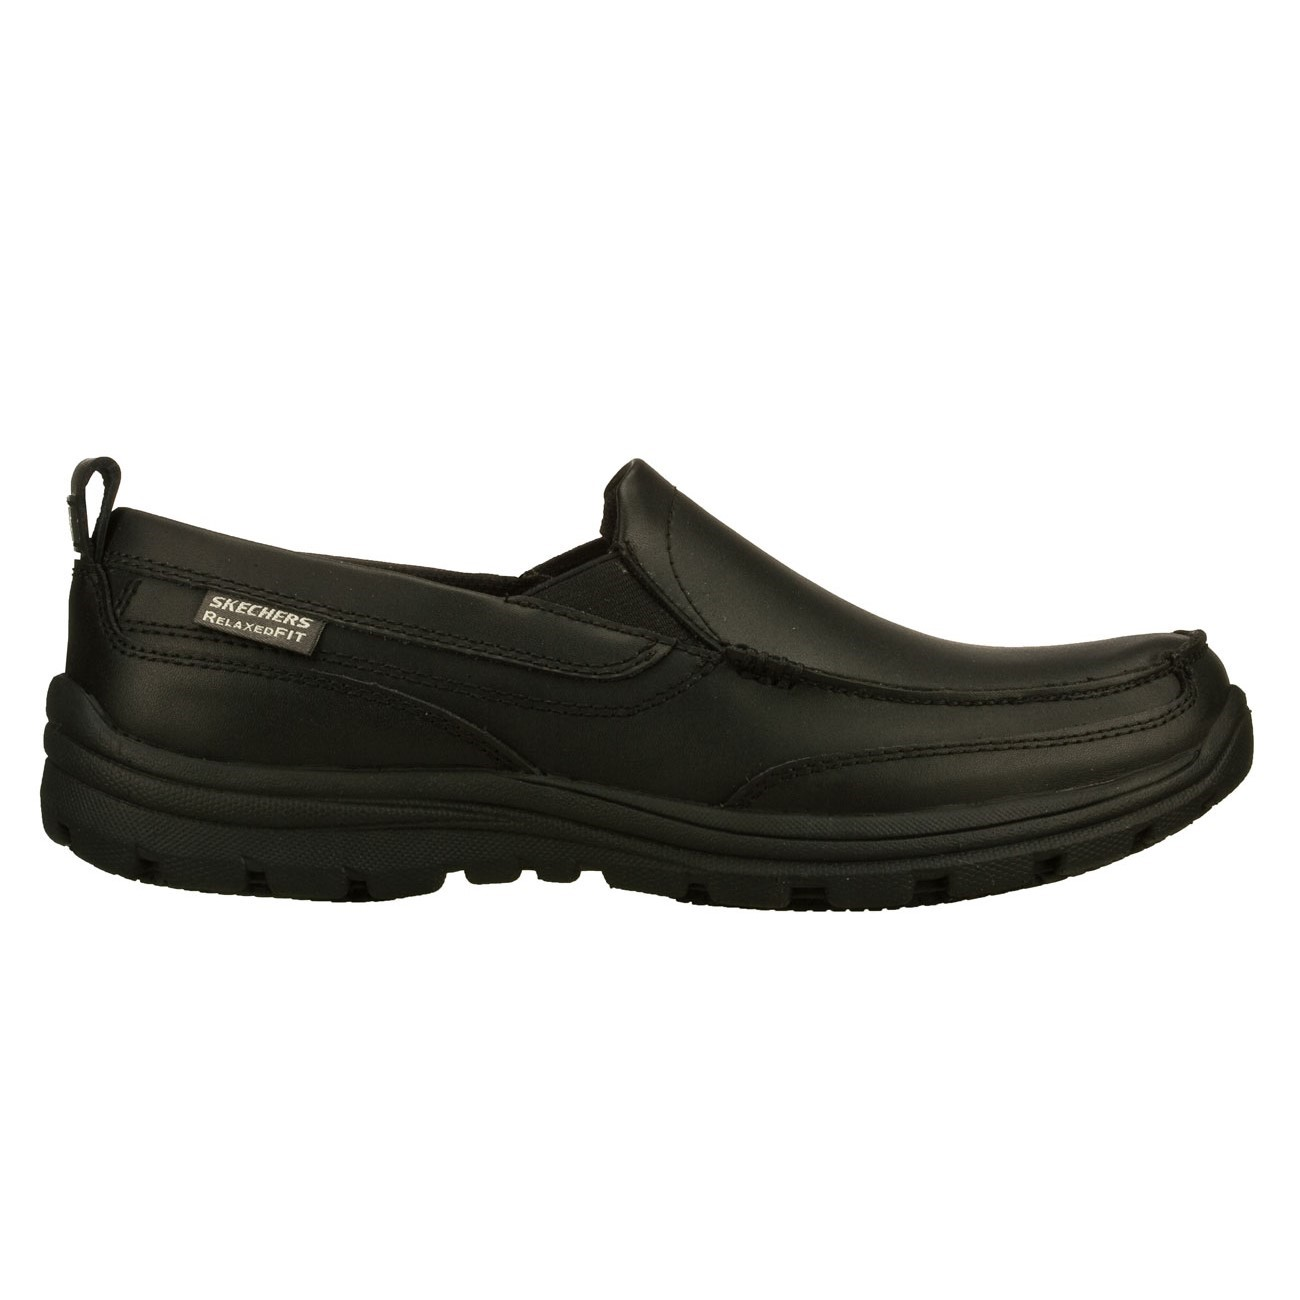 skechers hobbes mens slip resistant work shoes black